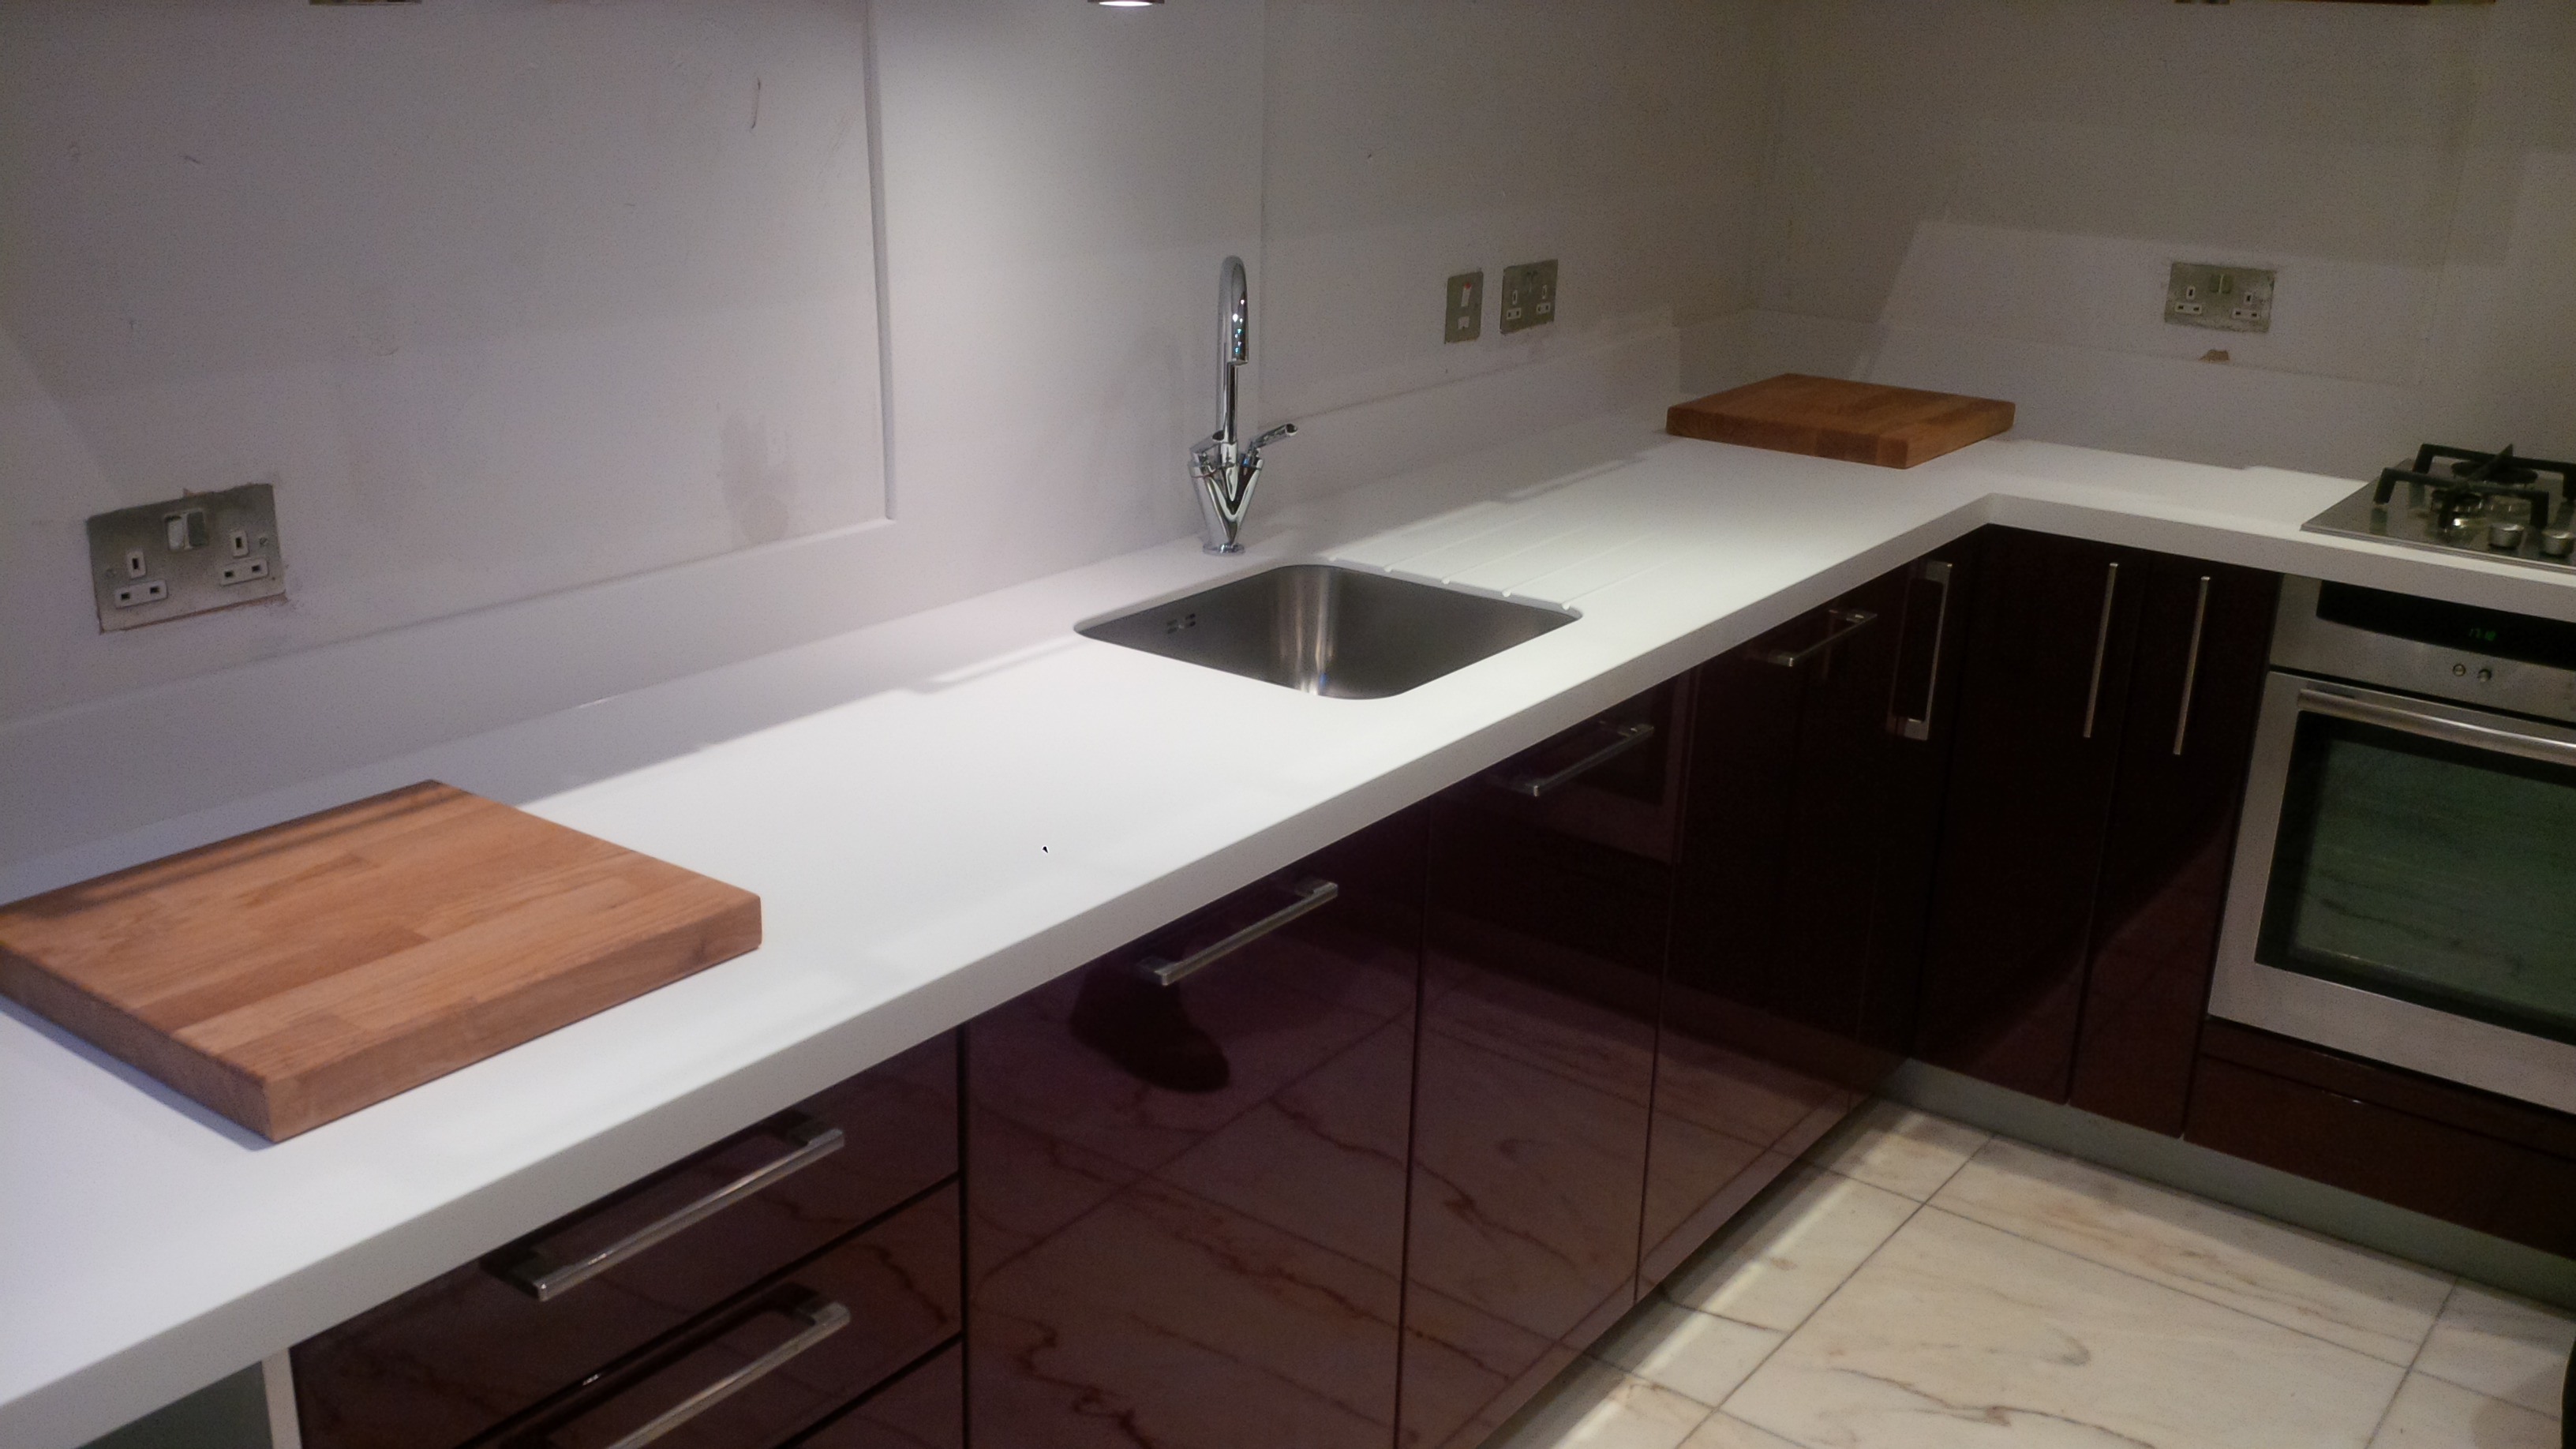 Replacement of granite worktops and upstands to glacier white corian and fitting of stainless steel  sink